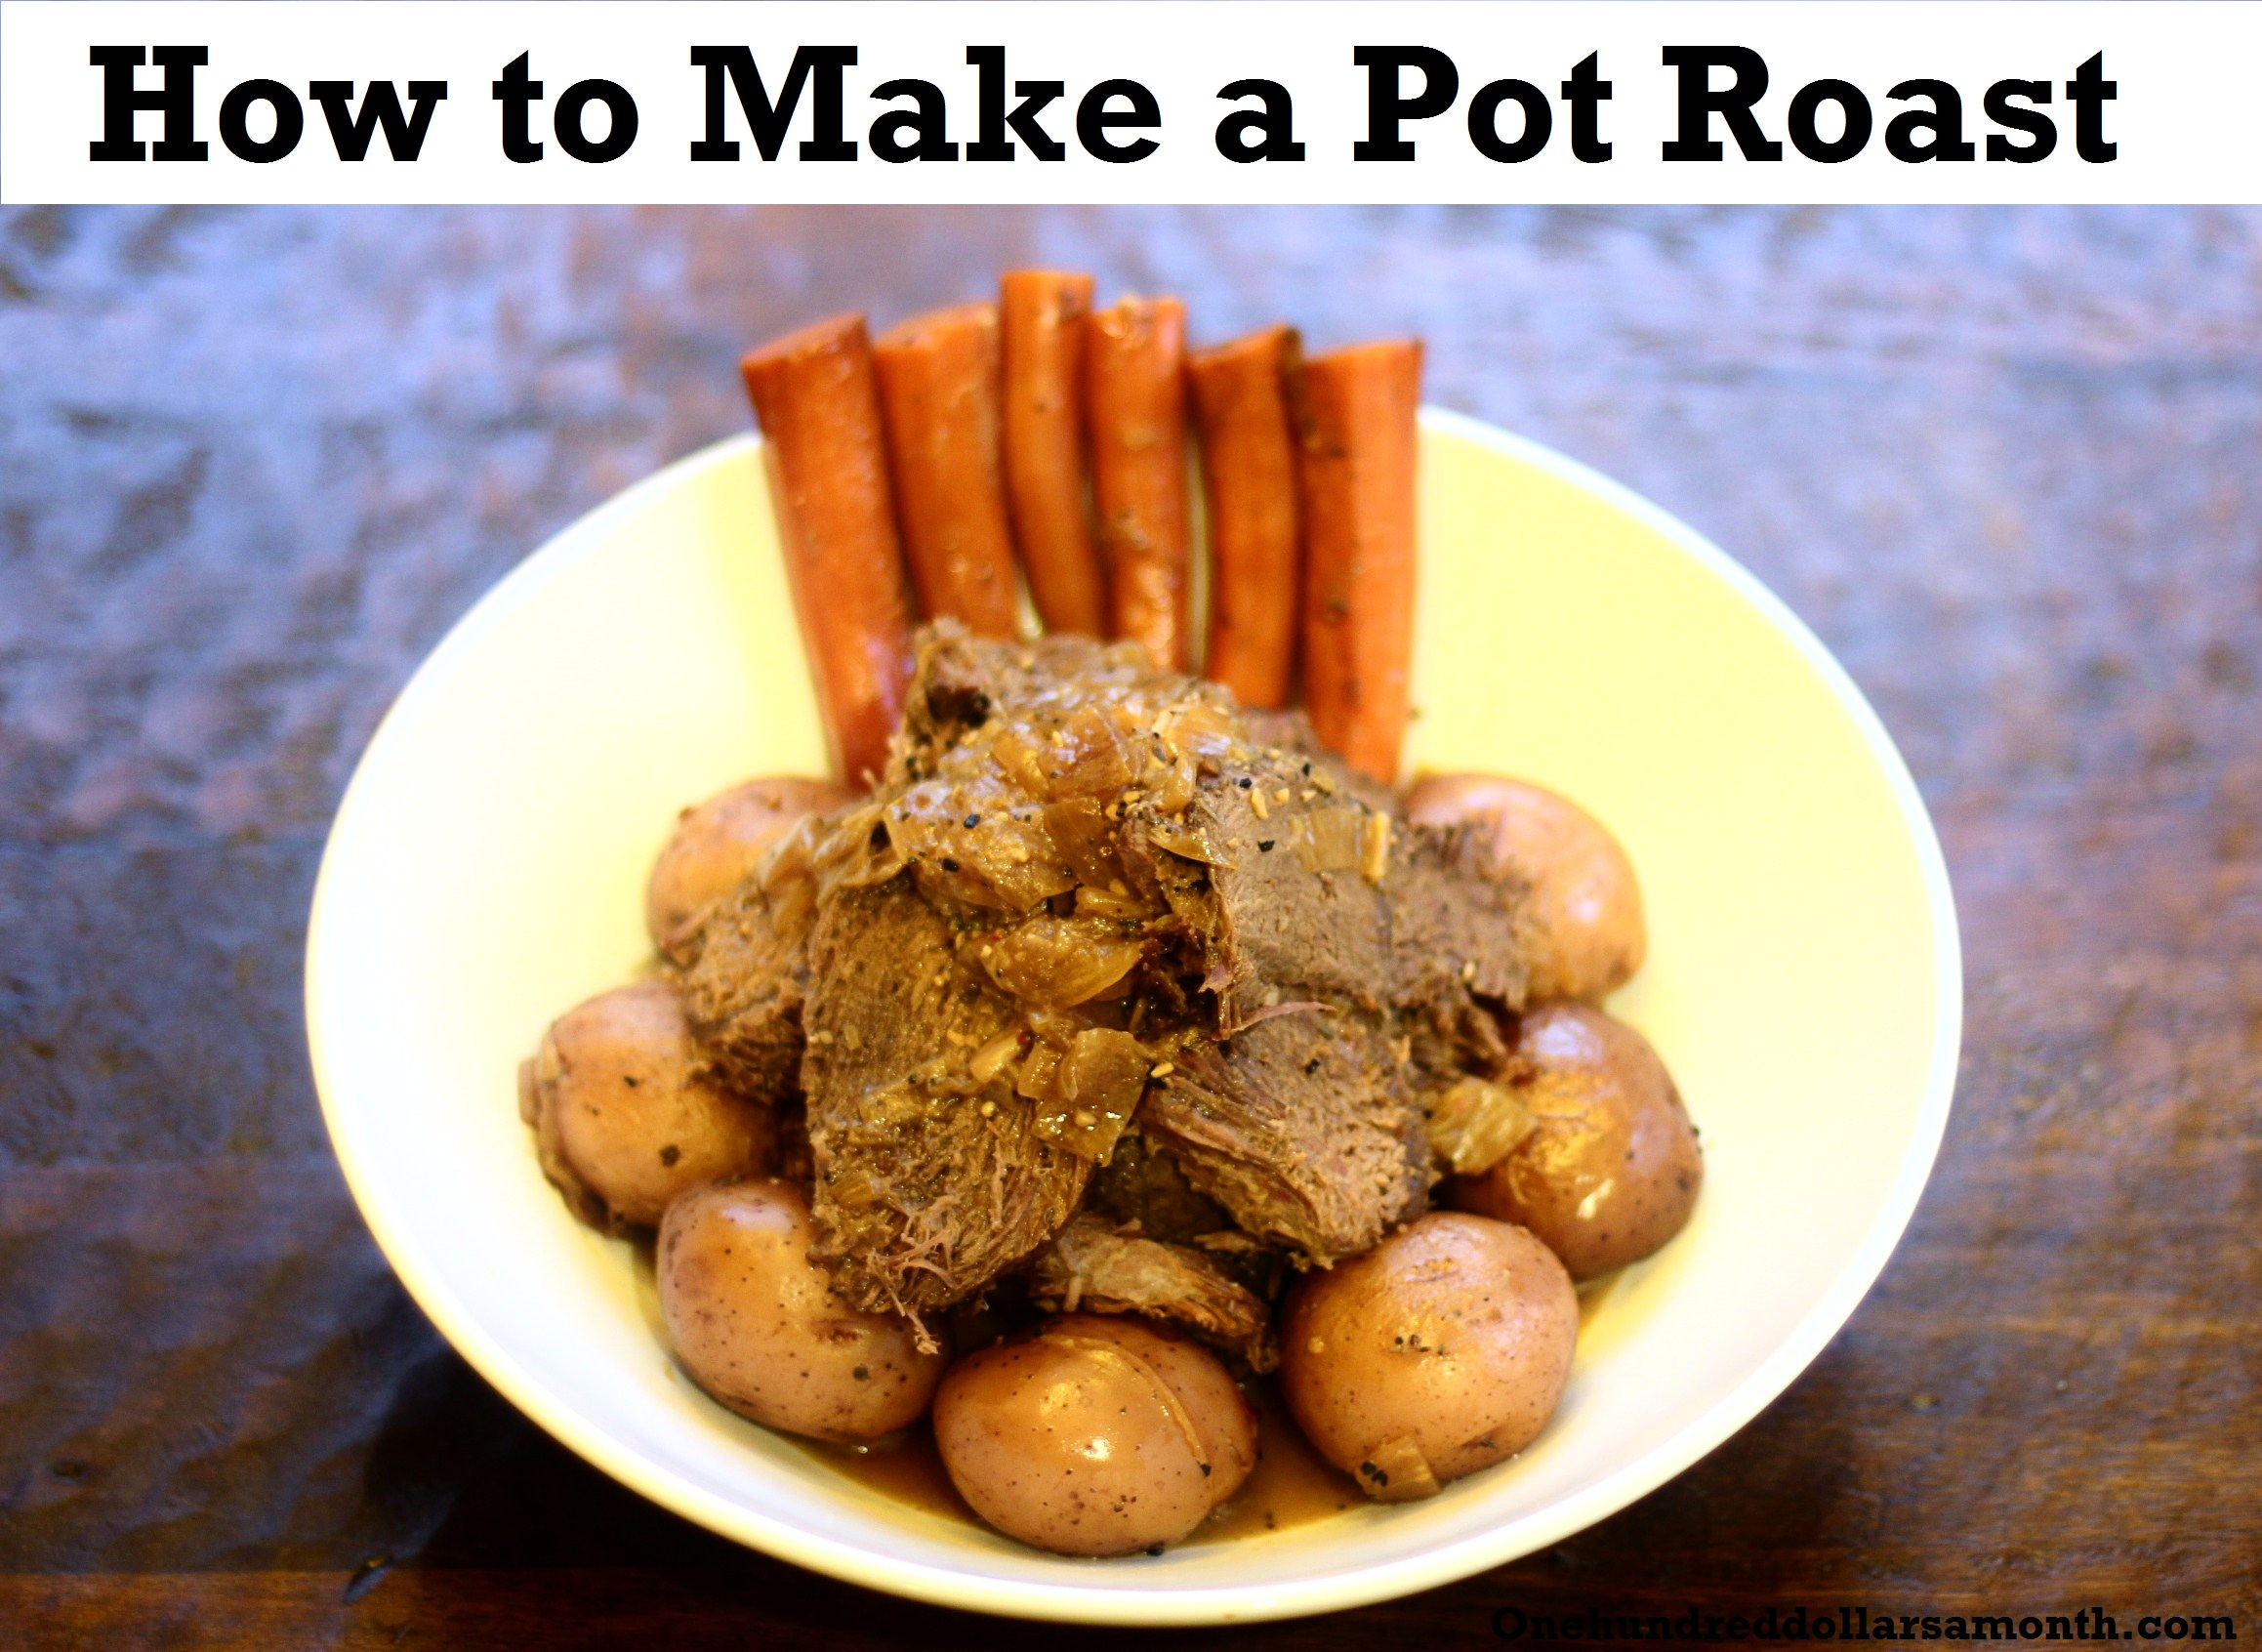 Recipe: How to Make a Pot Roast